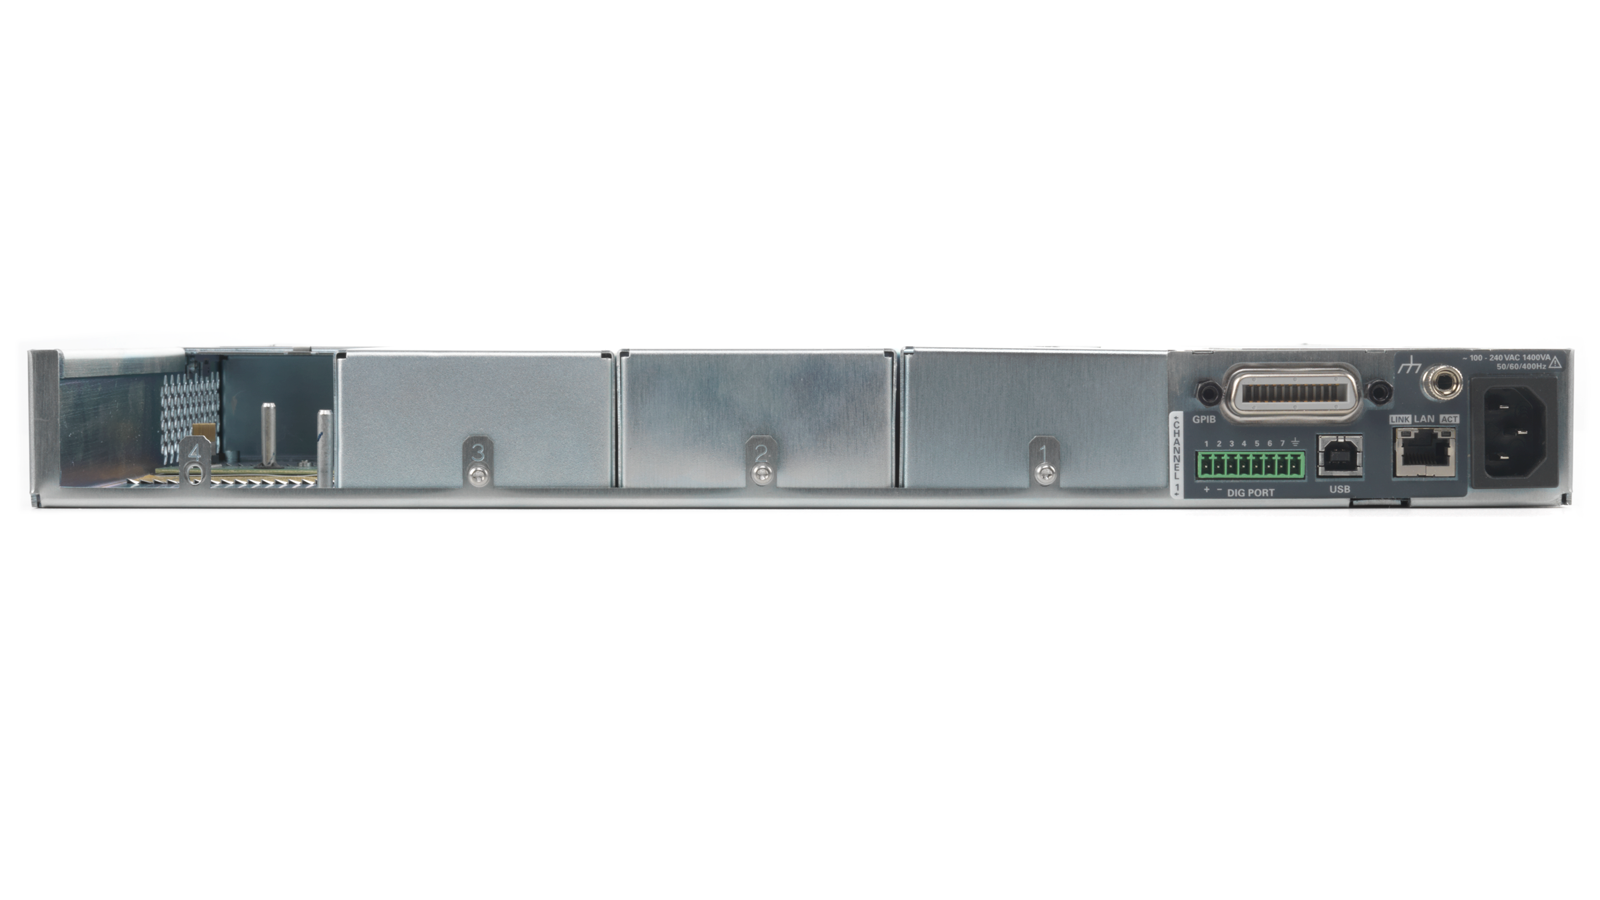 N6700 series modular power supply - Back panel